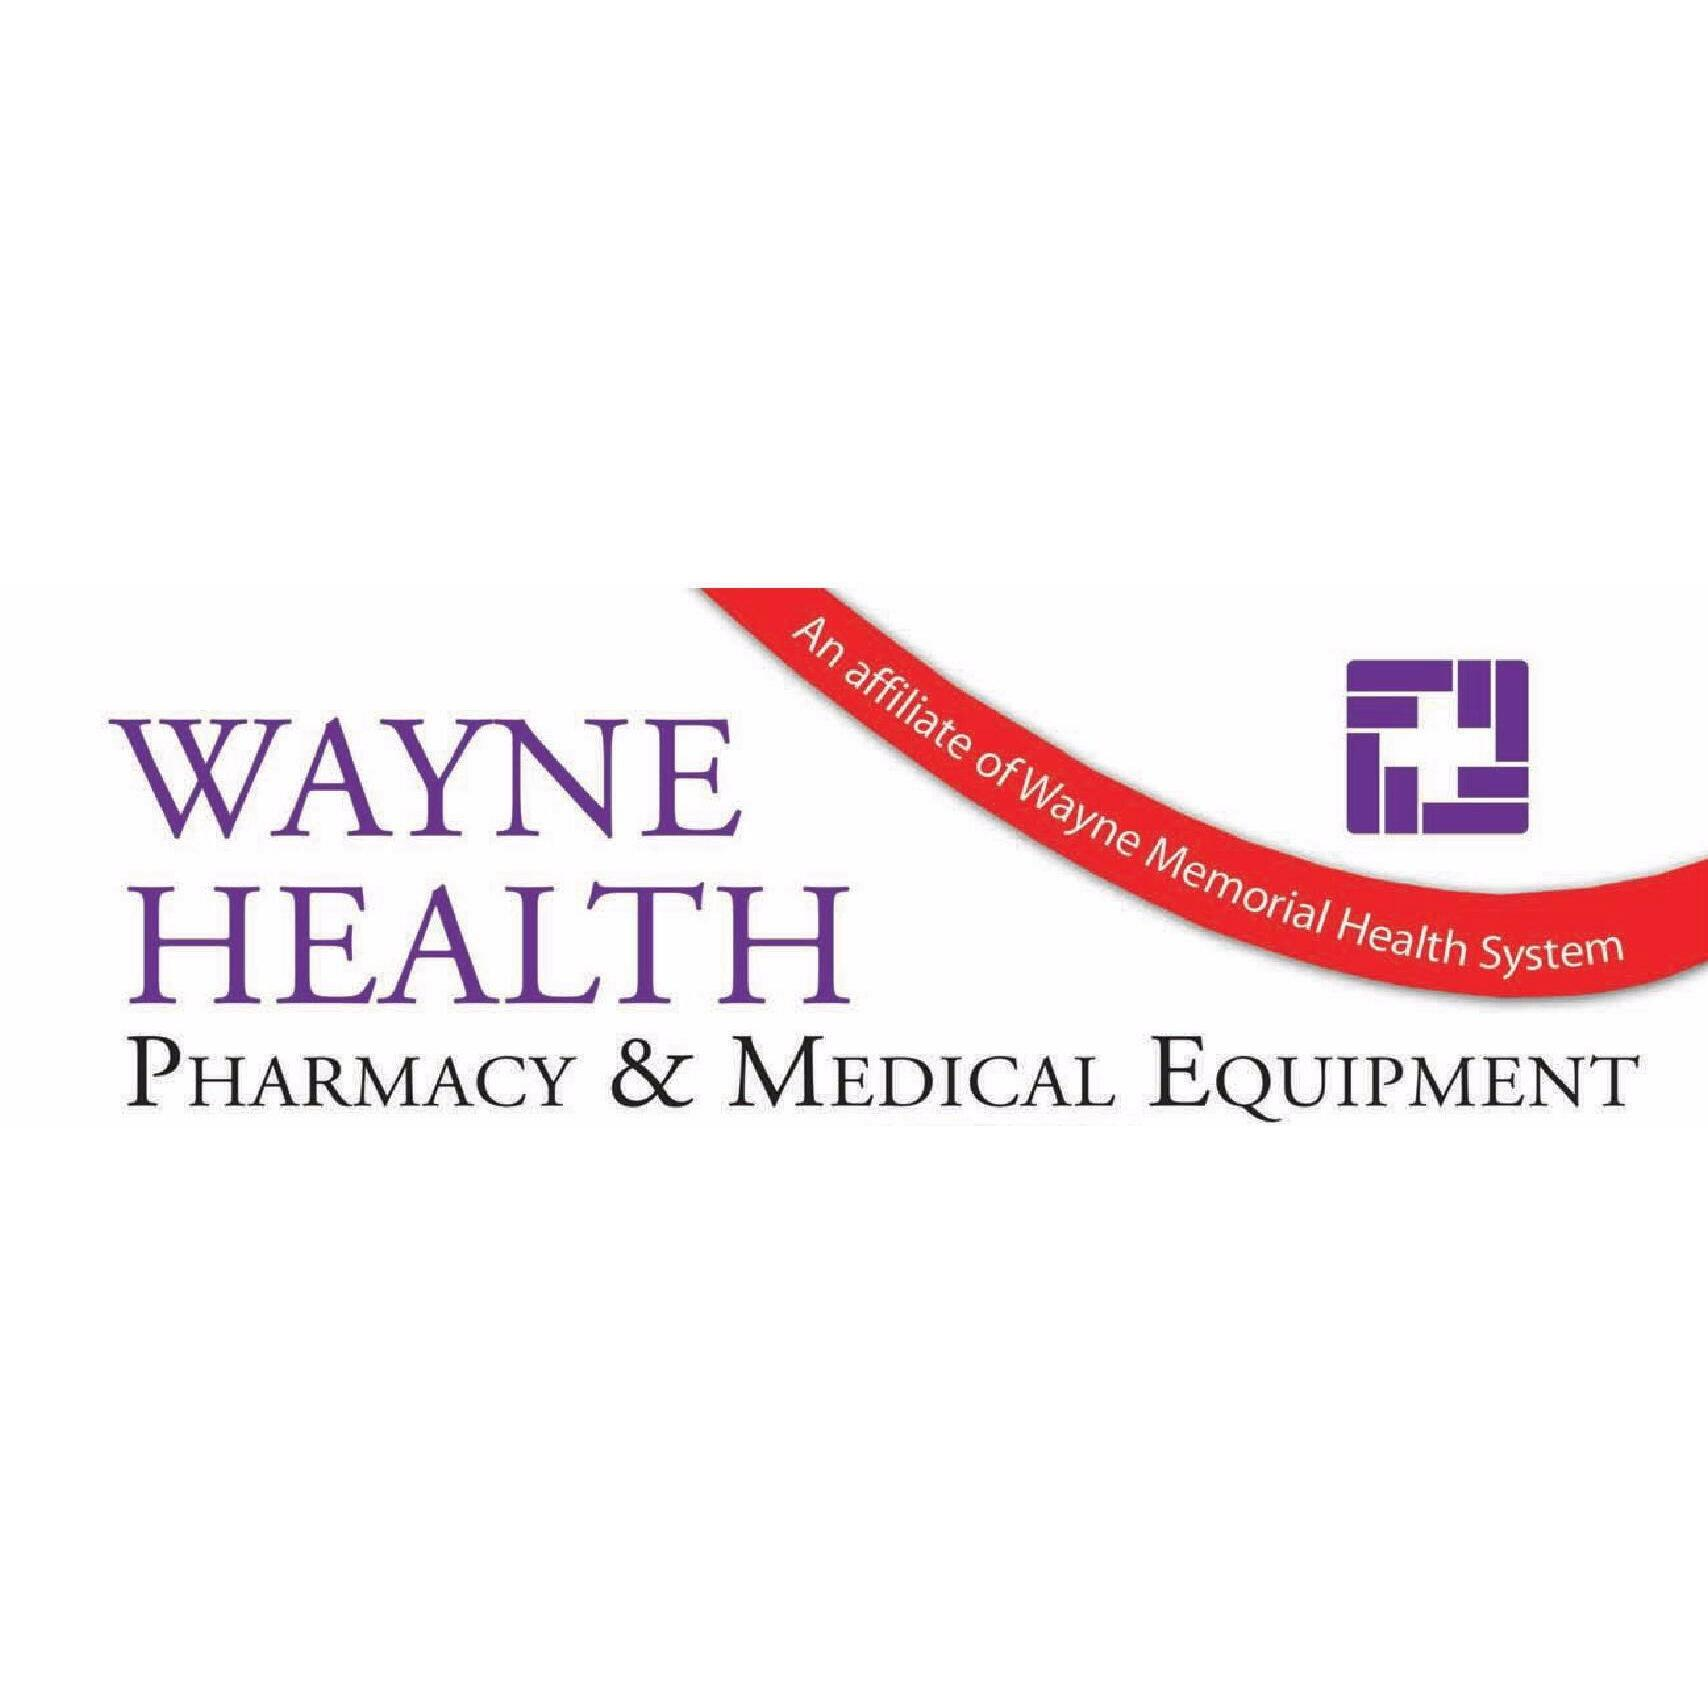 Wayne Health Pharmacy and Medical Equipment - Honesdale, PA - Medical Supplies